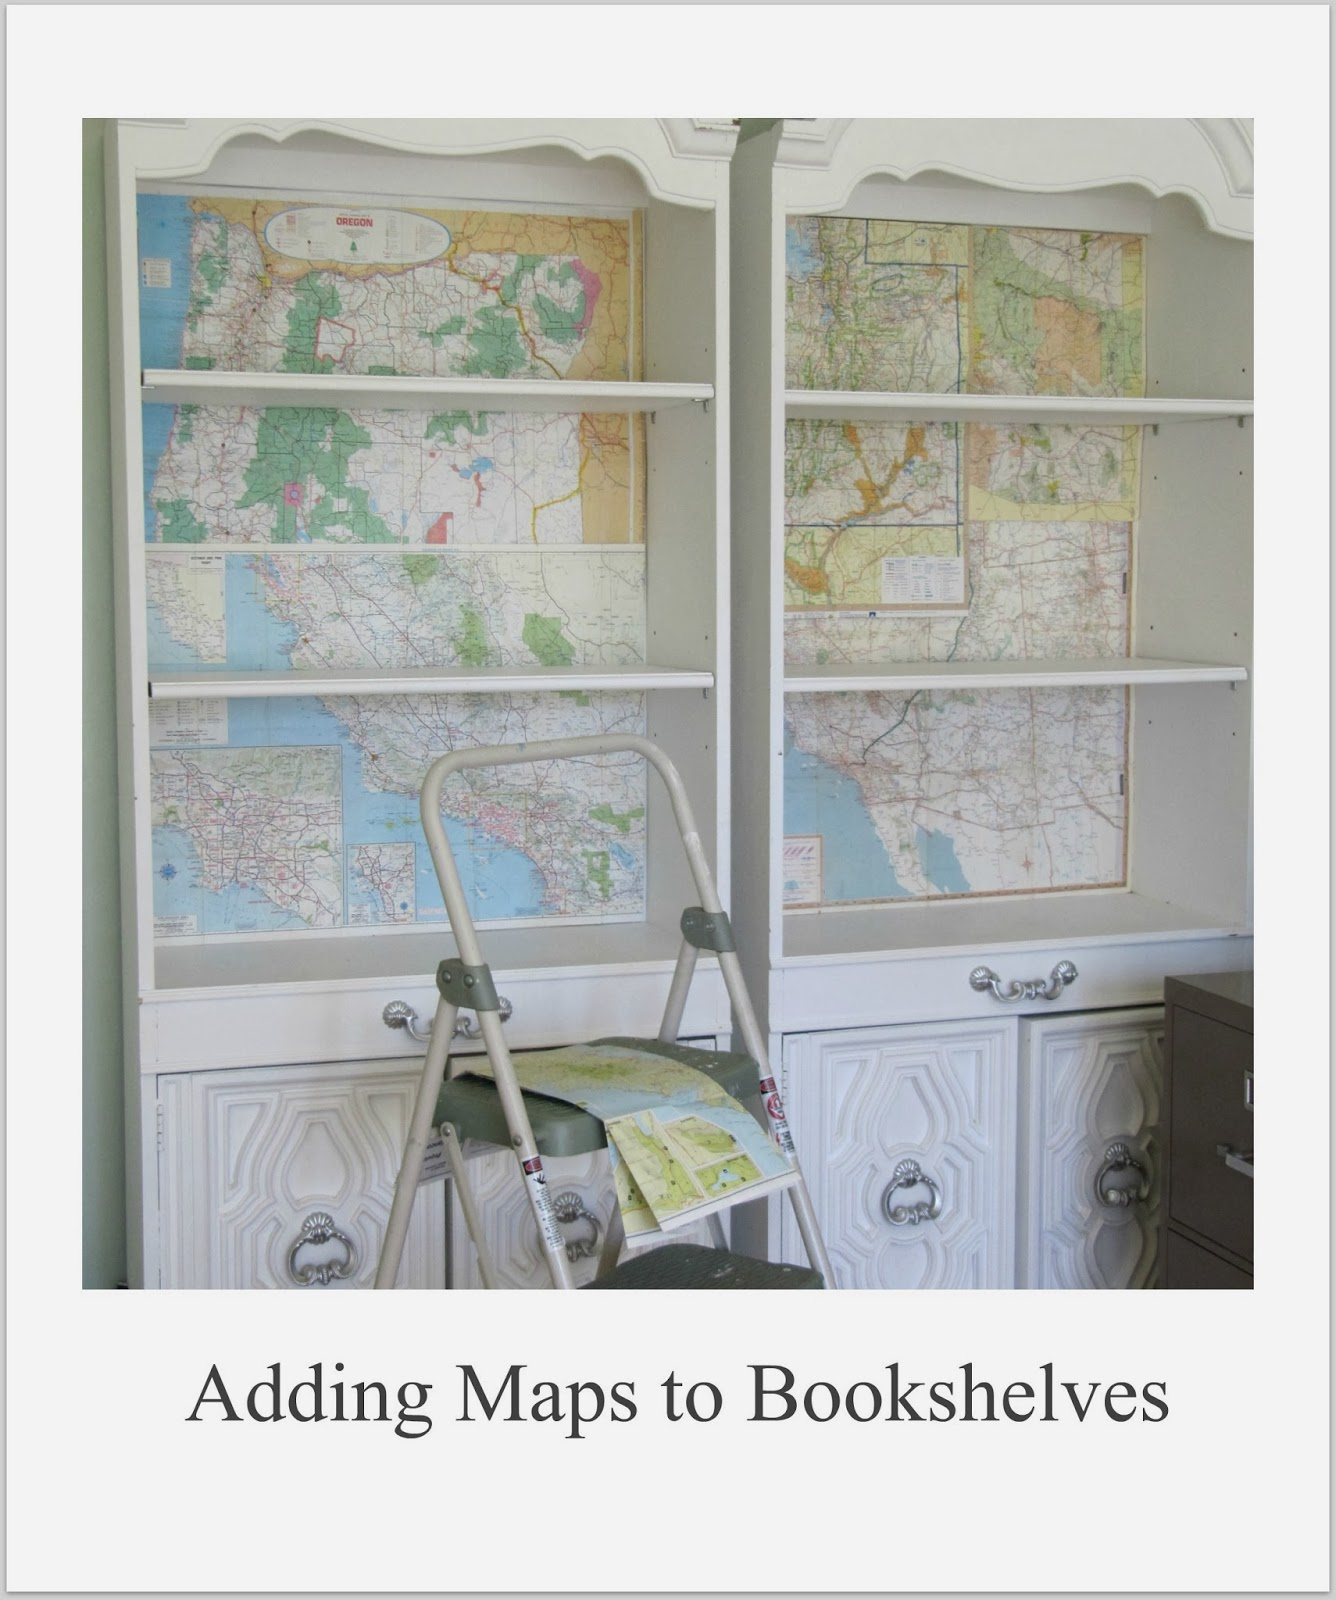 http://thewickerhouse.blogspot.com/2013/09/adding-maps-to-bookshelves-and-winner.html